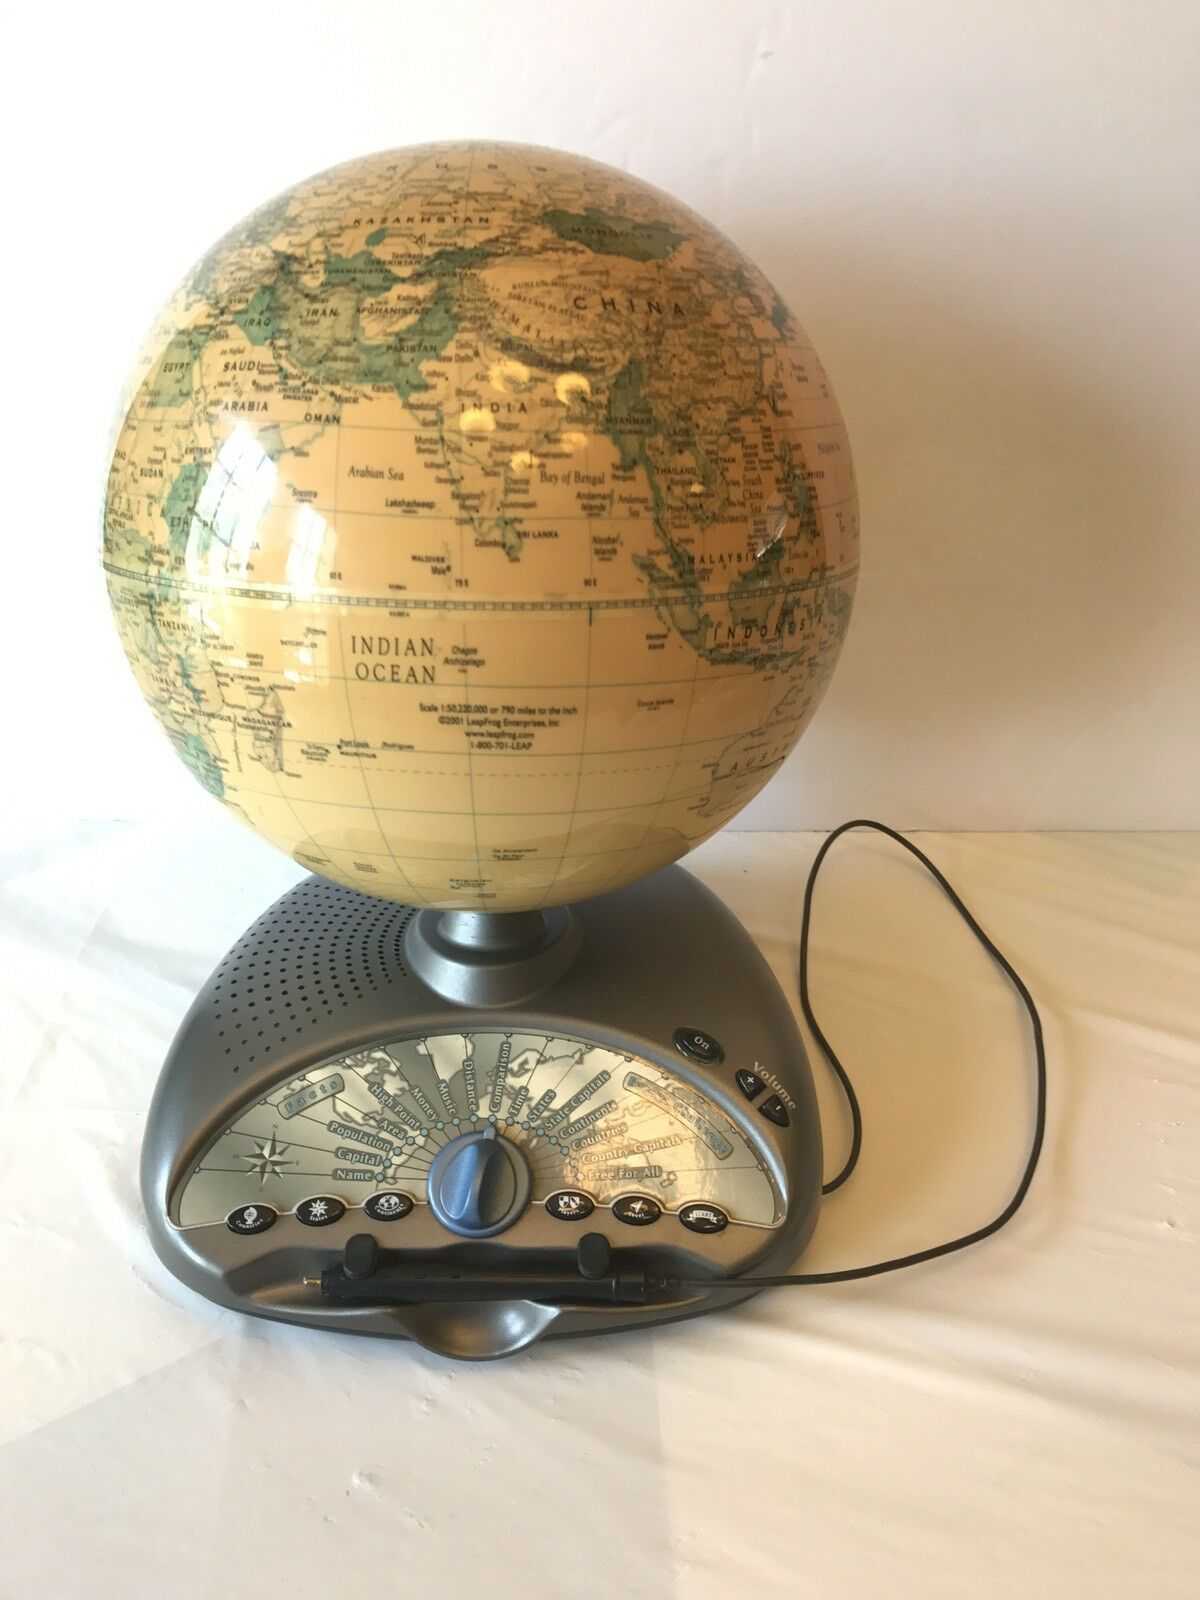 Leapfrog Interactive Odyssey III Educational Talking Globe Eureka Challenge